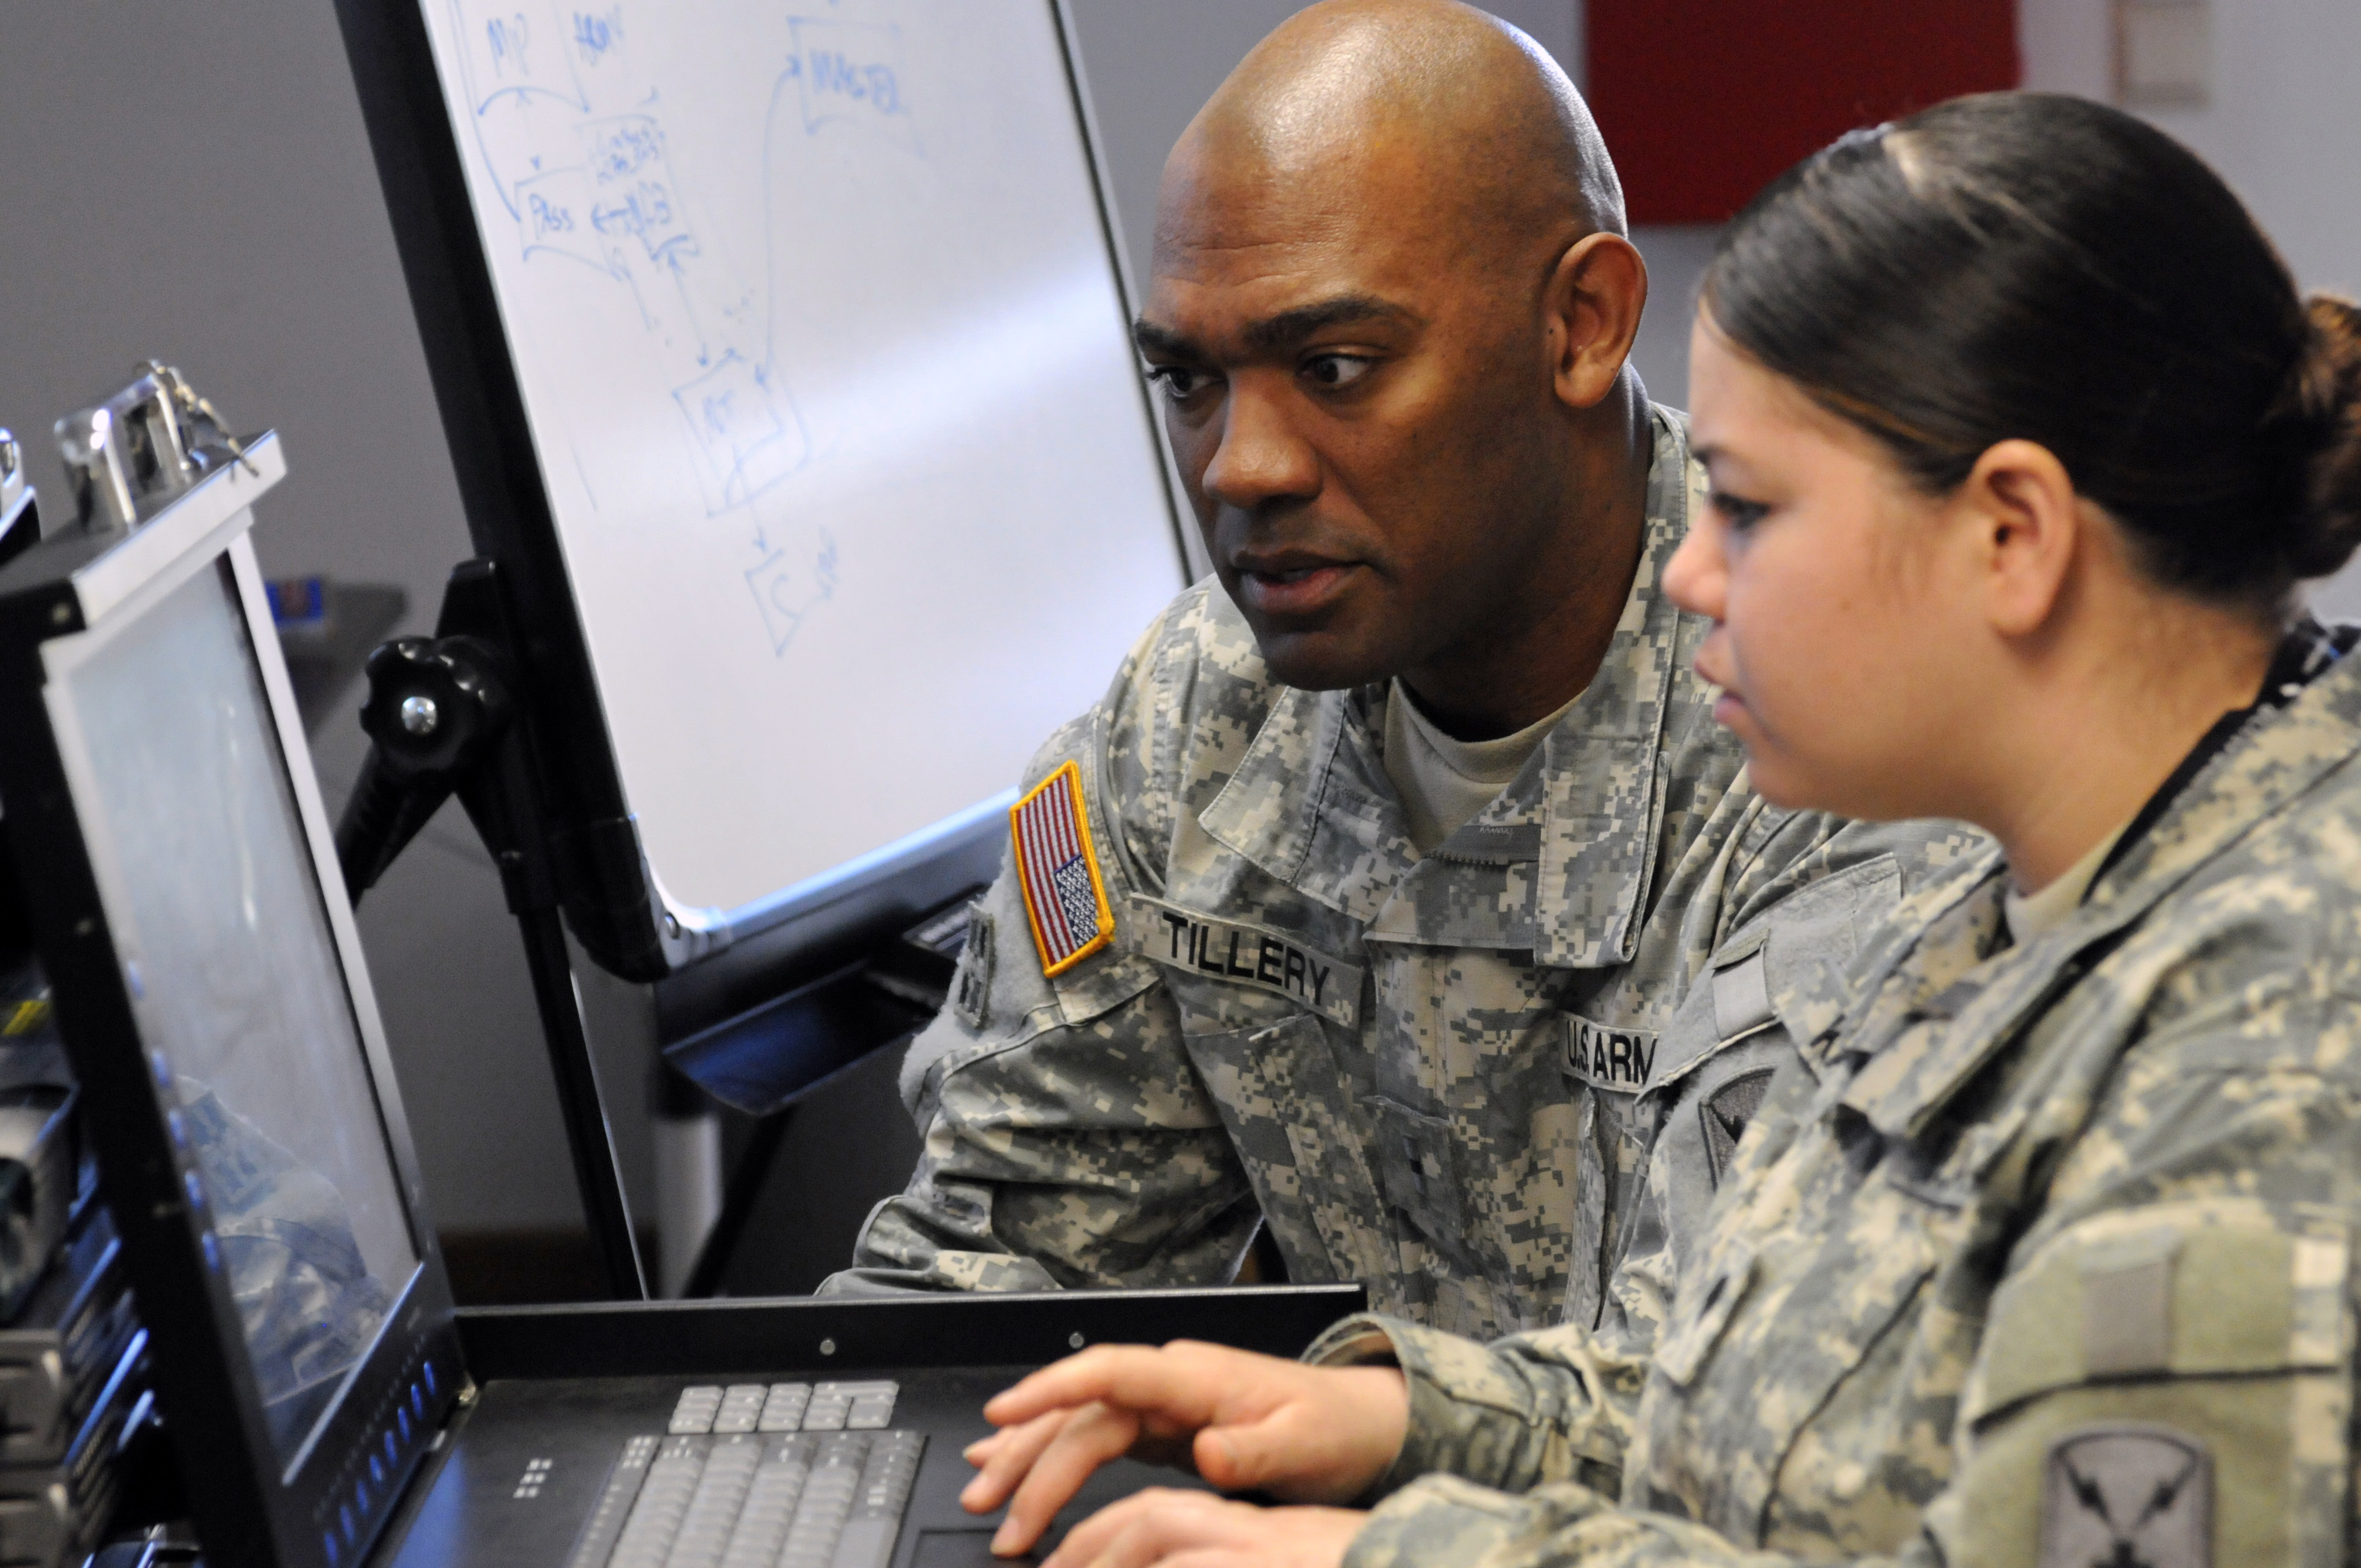 Cyber protection teams can be thought of as quick-reaction forces to assist local owners and are not meant to remain on the network for an extended duration. (Staff Sgt. Shawnon Lott/Army)